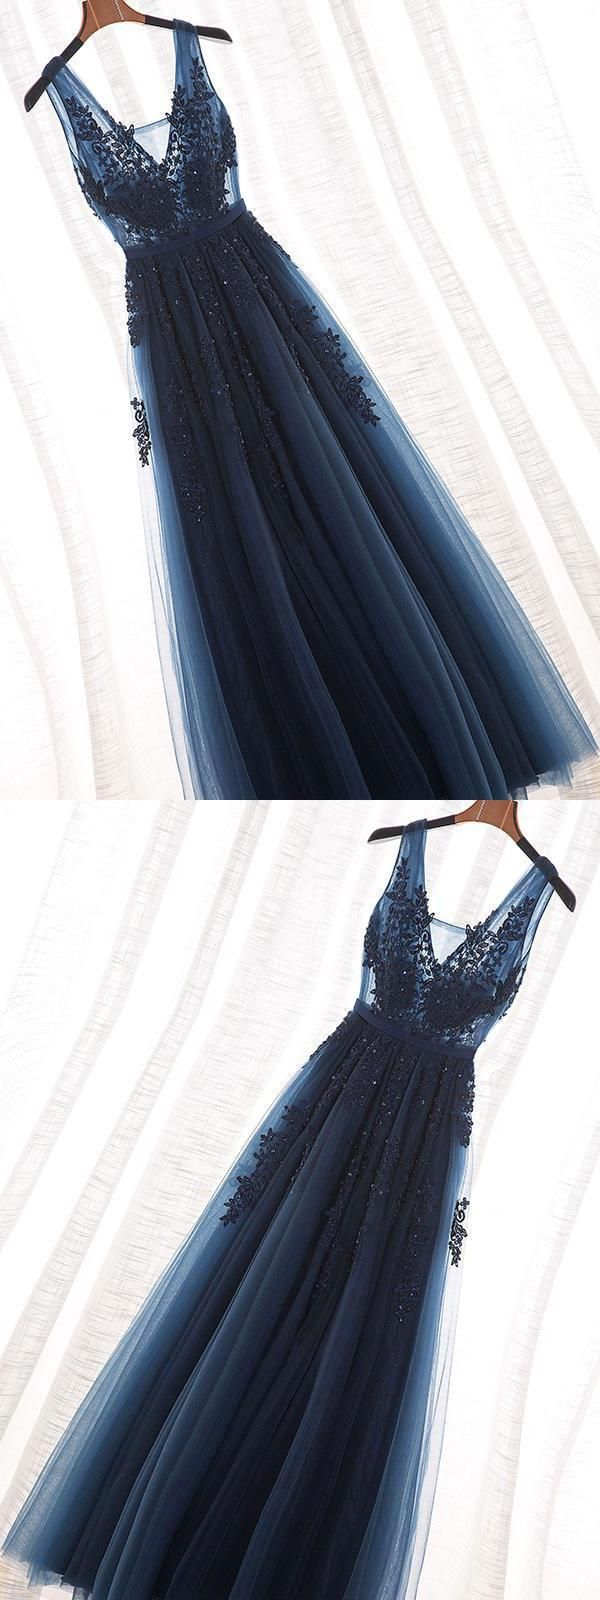 On Sale Soft Blue Prom Dress, Long Prom Dress, Navy Blue Prom Dress, Lace Prom Dress #bluepromdresses